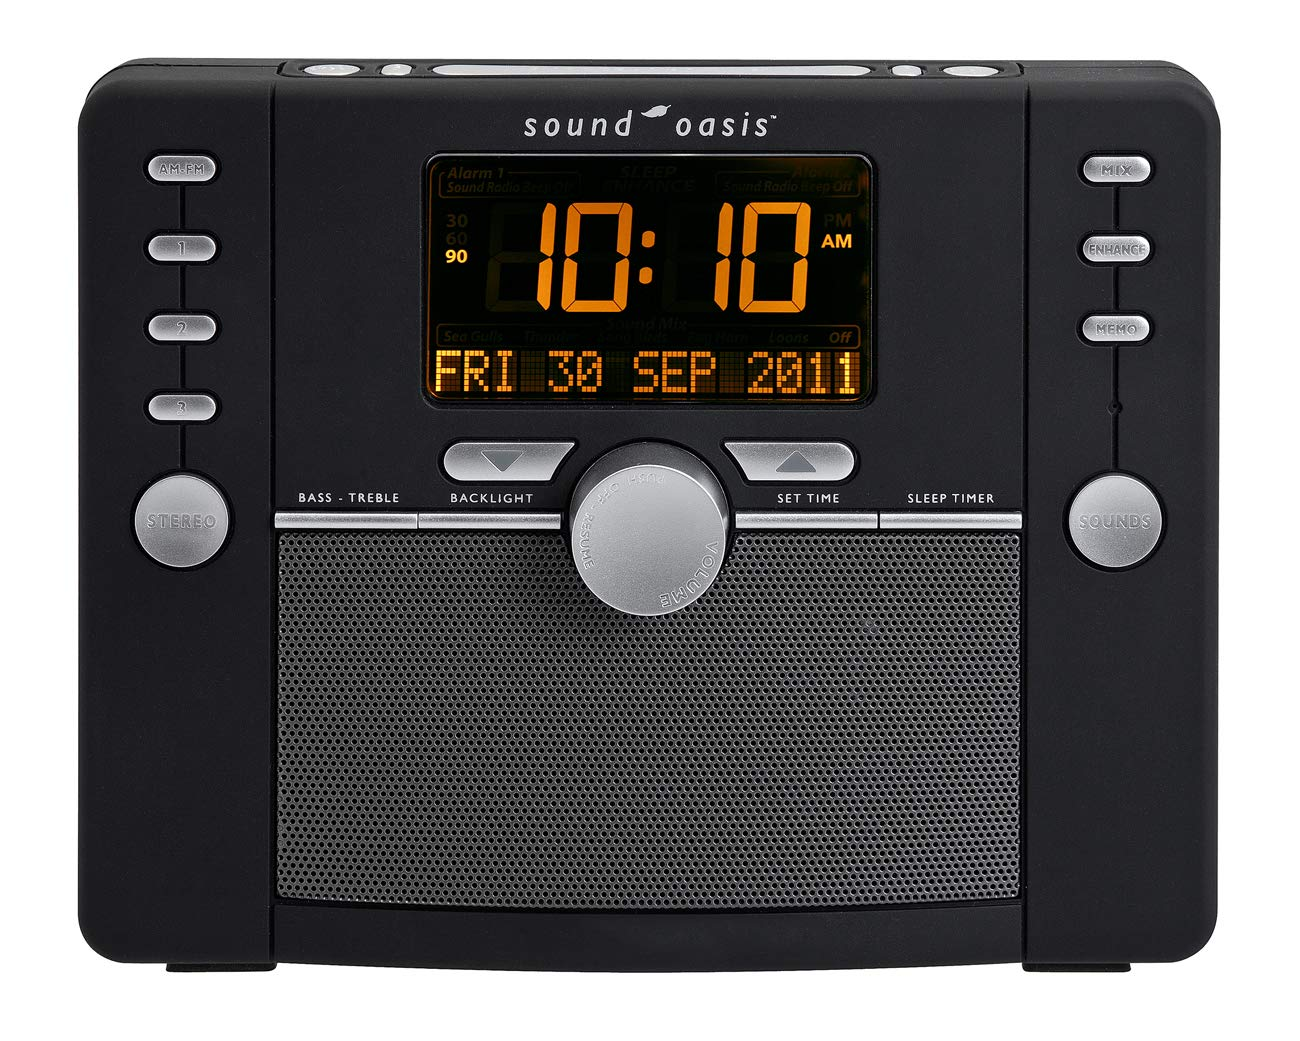 Sound Oasis S-5000 Deluxe Sleep Sound Therapy System, Black by Sound Oasis